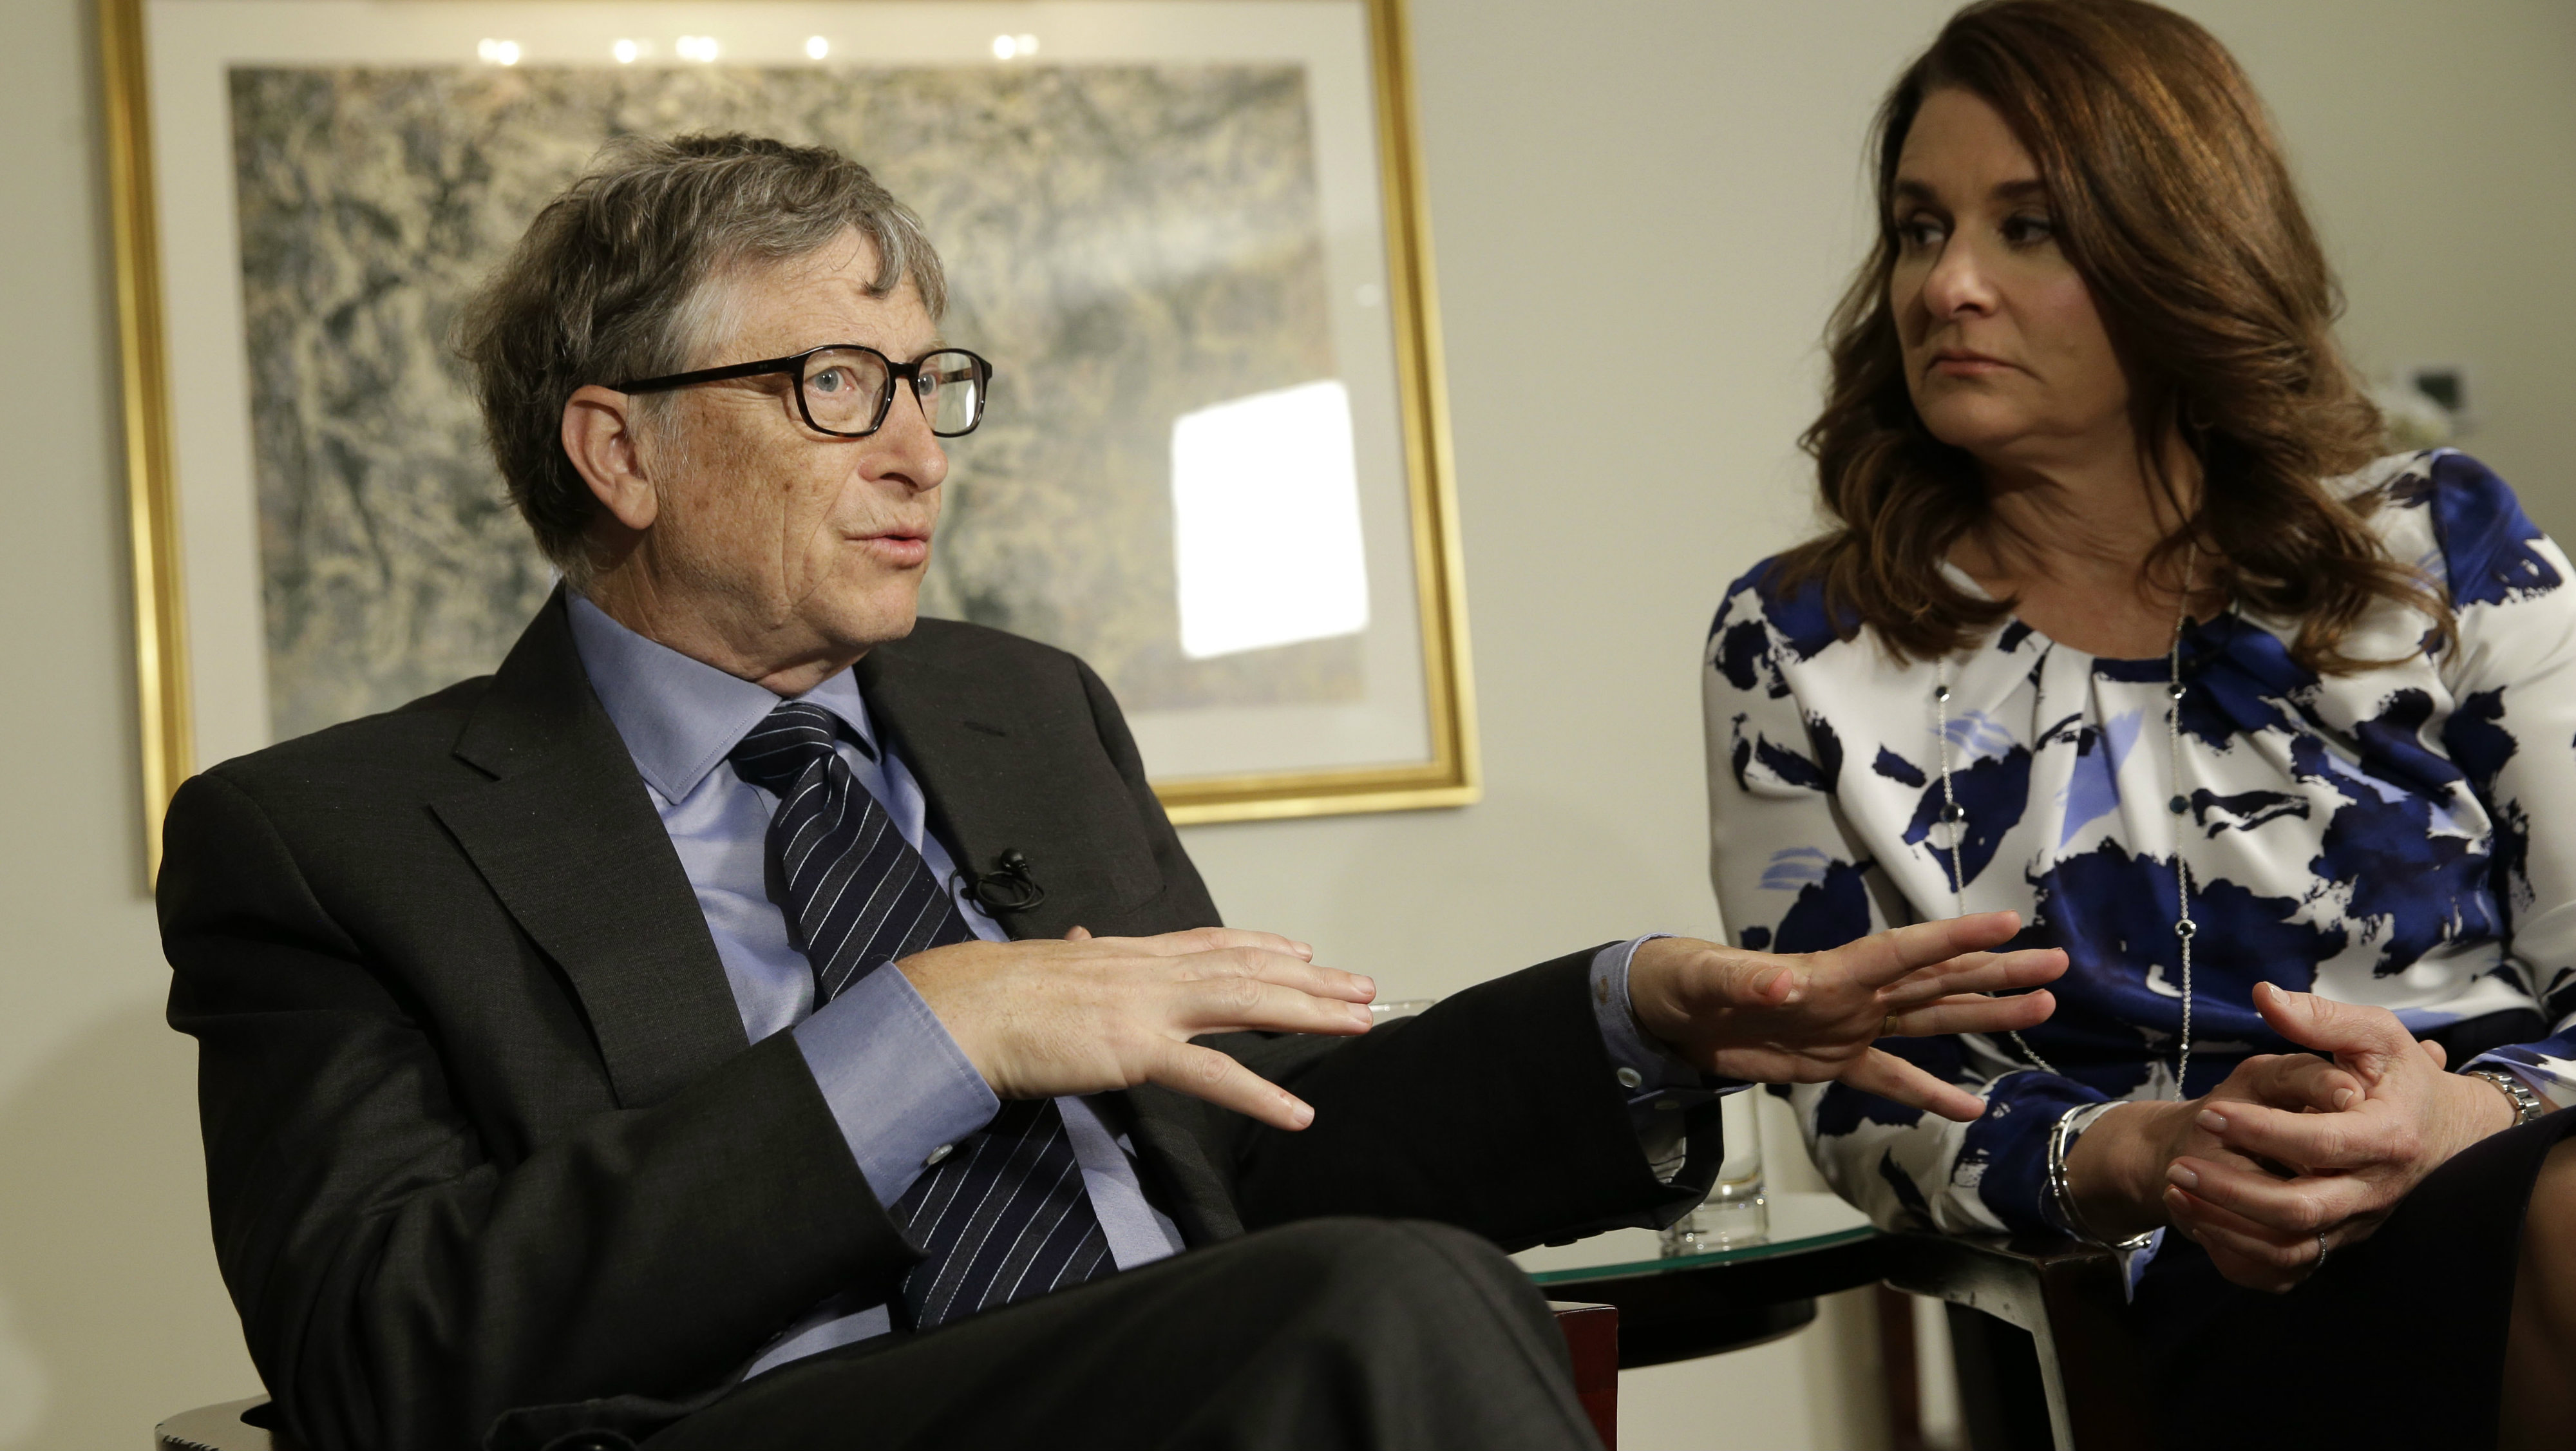 In this Monday, Feb. 22, 2016 file photo, Bill and Melinda Gates talk to reporters about the 2016 annual letter from their foundation, the Bill and Melinda Gates Foundation, in New York. Researchers are trying to infect mosquitoes in Brazil and Colombia with a type of bacteria that could prevent them from spreading Zika virus and other dangerous diseases. British and American governments are teaming up with the Bill and Melinda Gates Foundation and the U.K.-based Wellcome Trust to expand field tests in Rio de Janeiro in Brazil and the city of Bello in northwest Colombia, philanthropist Bill Gates told a conference Wednesday Oct. 26, 2016.